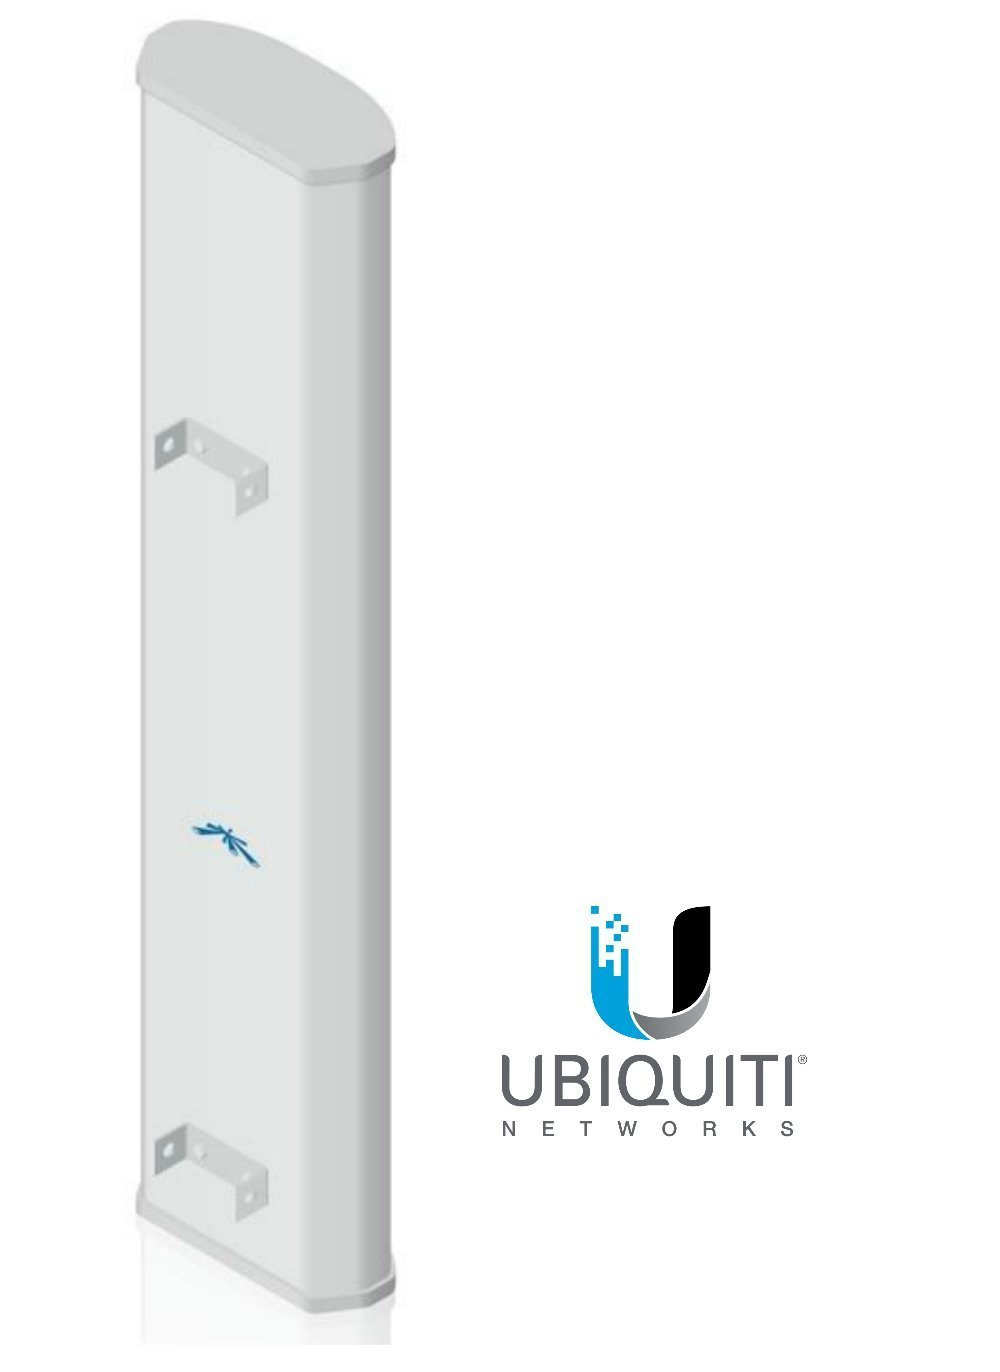 Ubiquiti Networks Airmax 900Mhz 13dBi 120 Degree 2x2 BaseStation Sector Antenna by Ubiquiti Networks